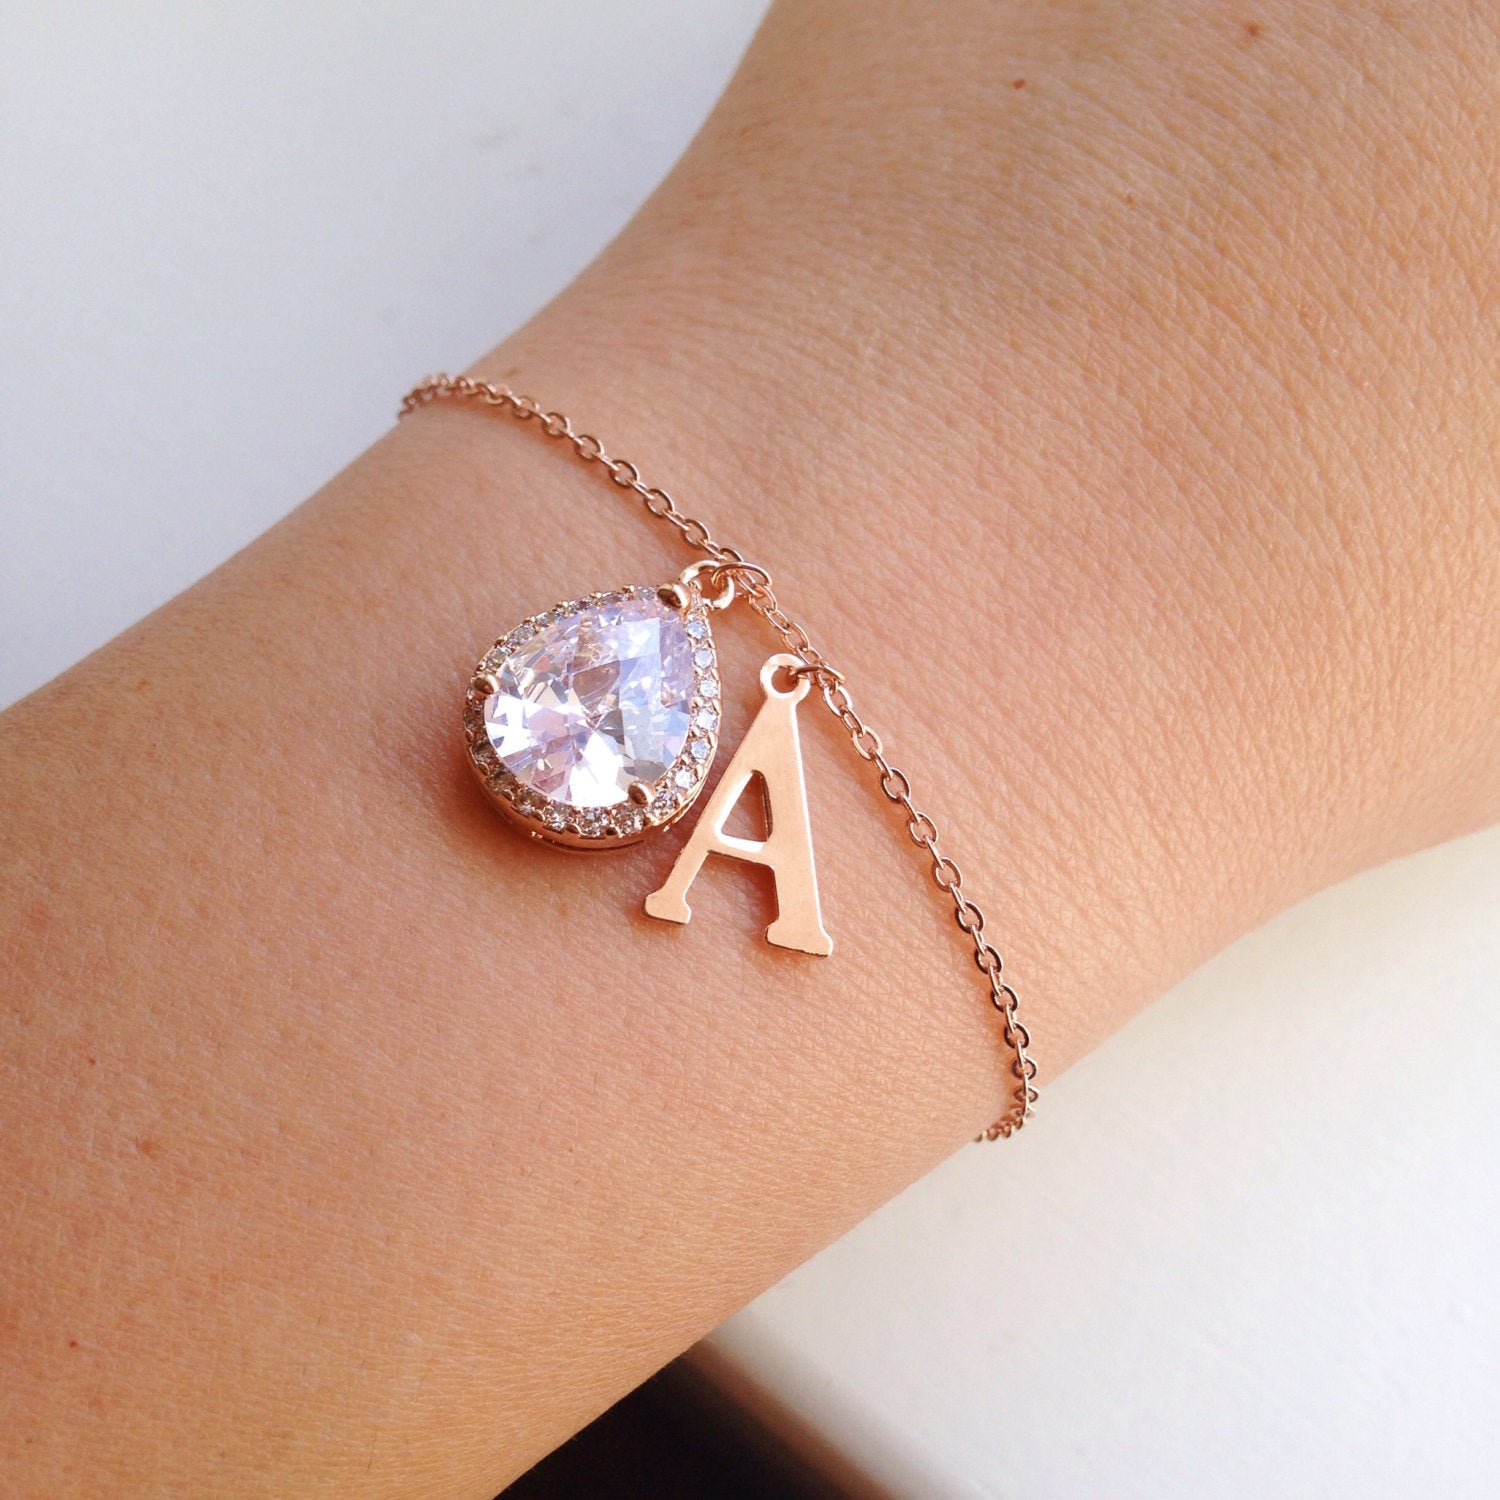 Large Rose Gold Initial Bracelet - Rose Gold CZ Jewelry - Clear Crystal Bracelet - Bridal Jewelry - Bridesmaid Jewelry - Wedding Bracelet